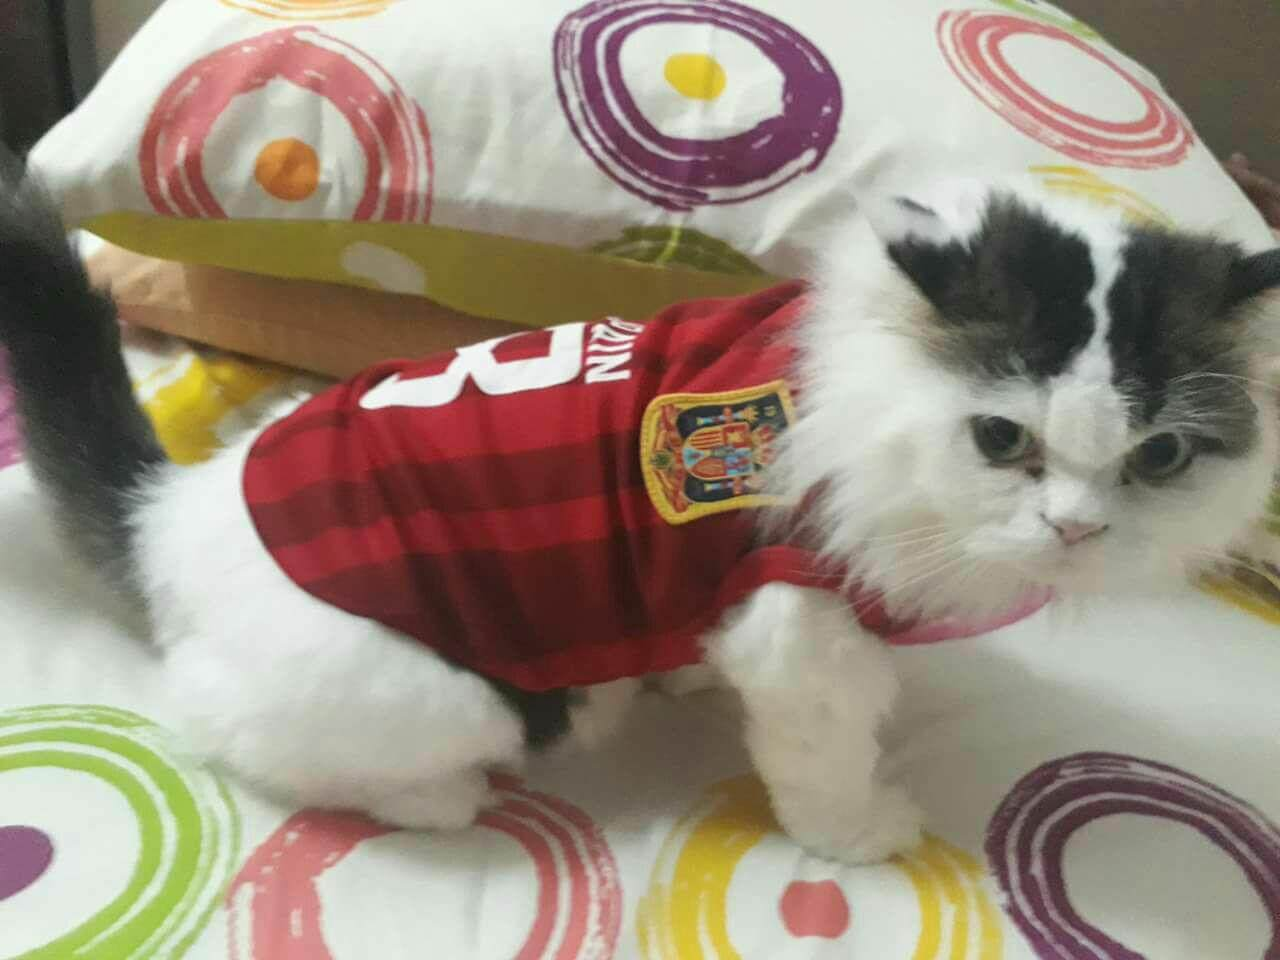 5671c4583a1 world cup jersey spain xl- cats,small/medium breed dogs dogs